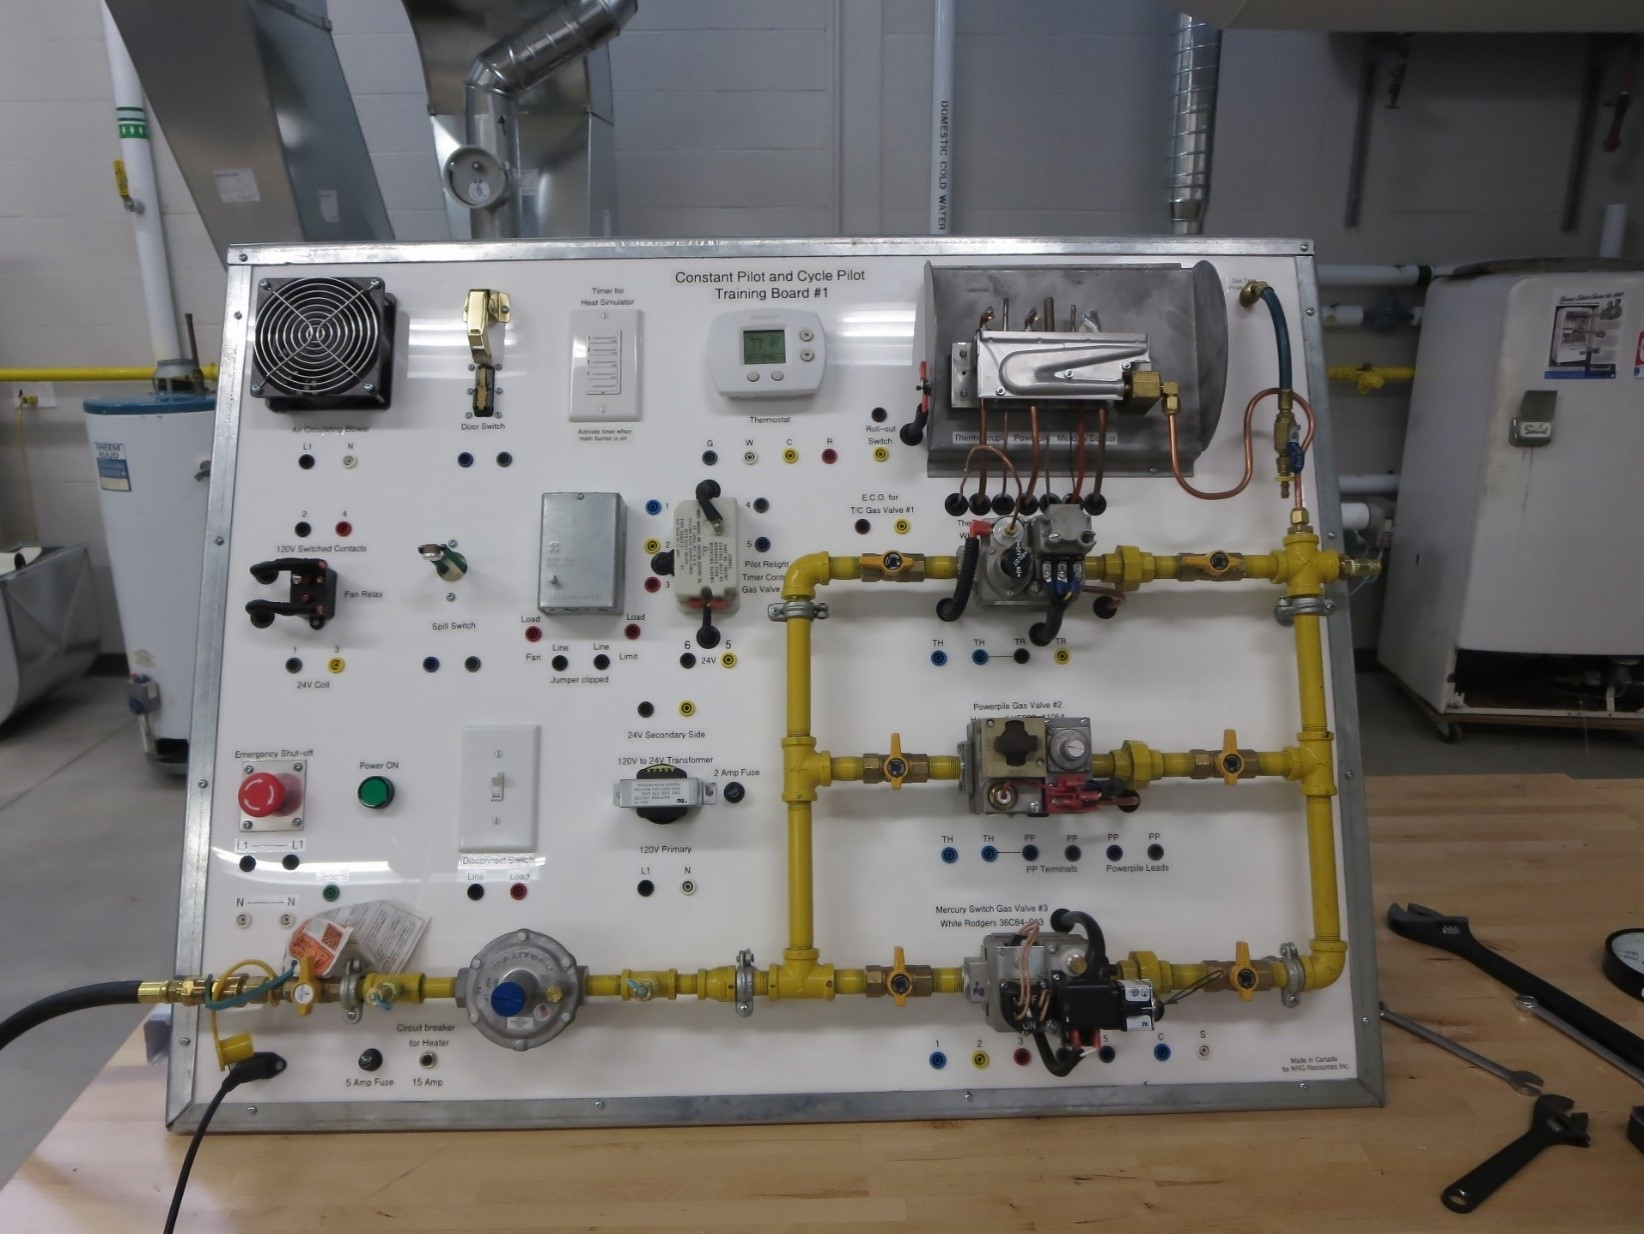 Training Equipment Nrg Resources Inc Electrical Control Wiring G3 G2 Boards